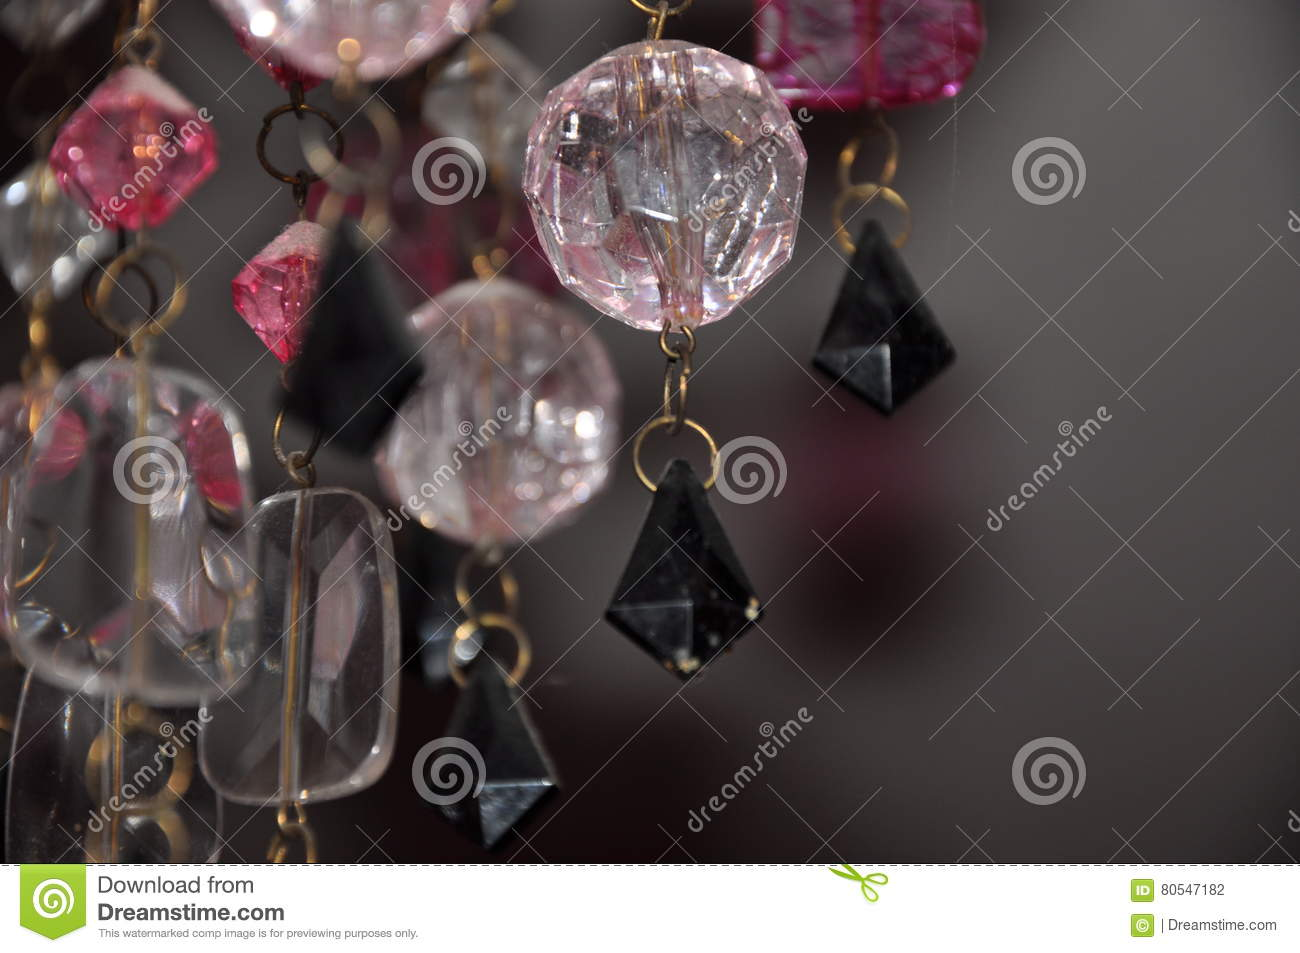 Beautiful Chandelier Crystals Background Stock Photo Image Of - Chandelier crystals plastic